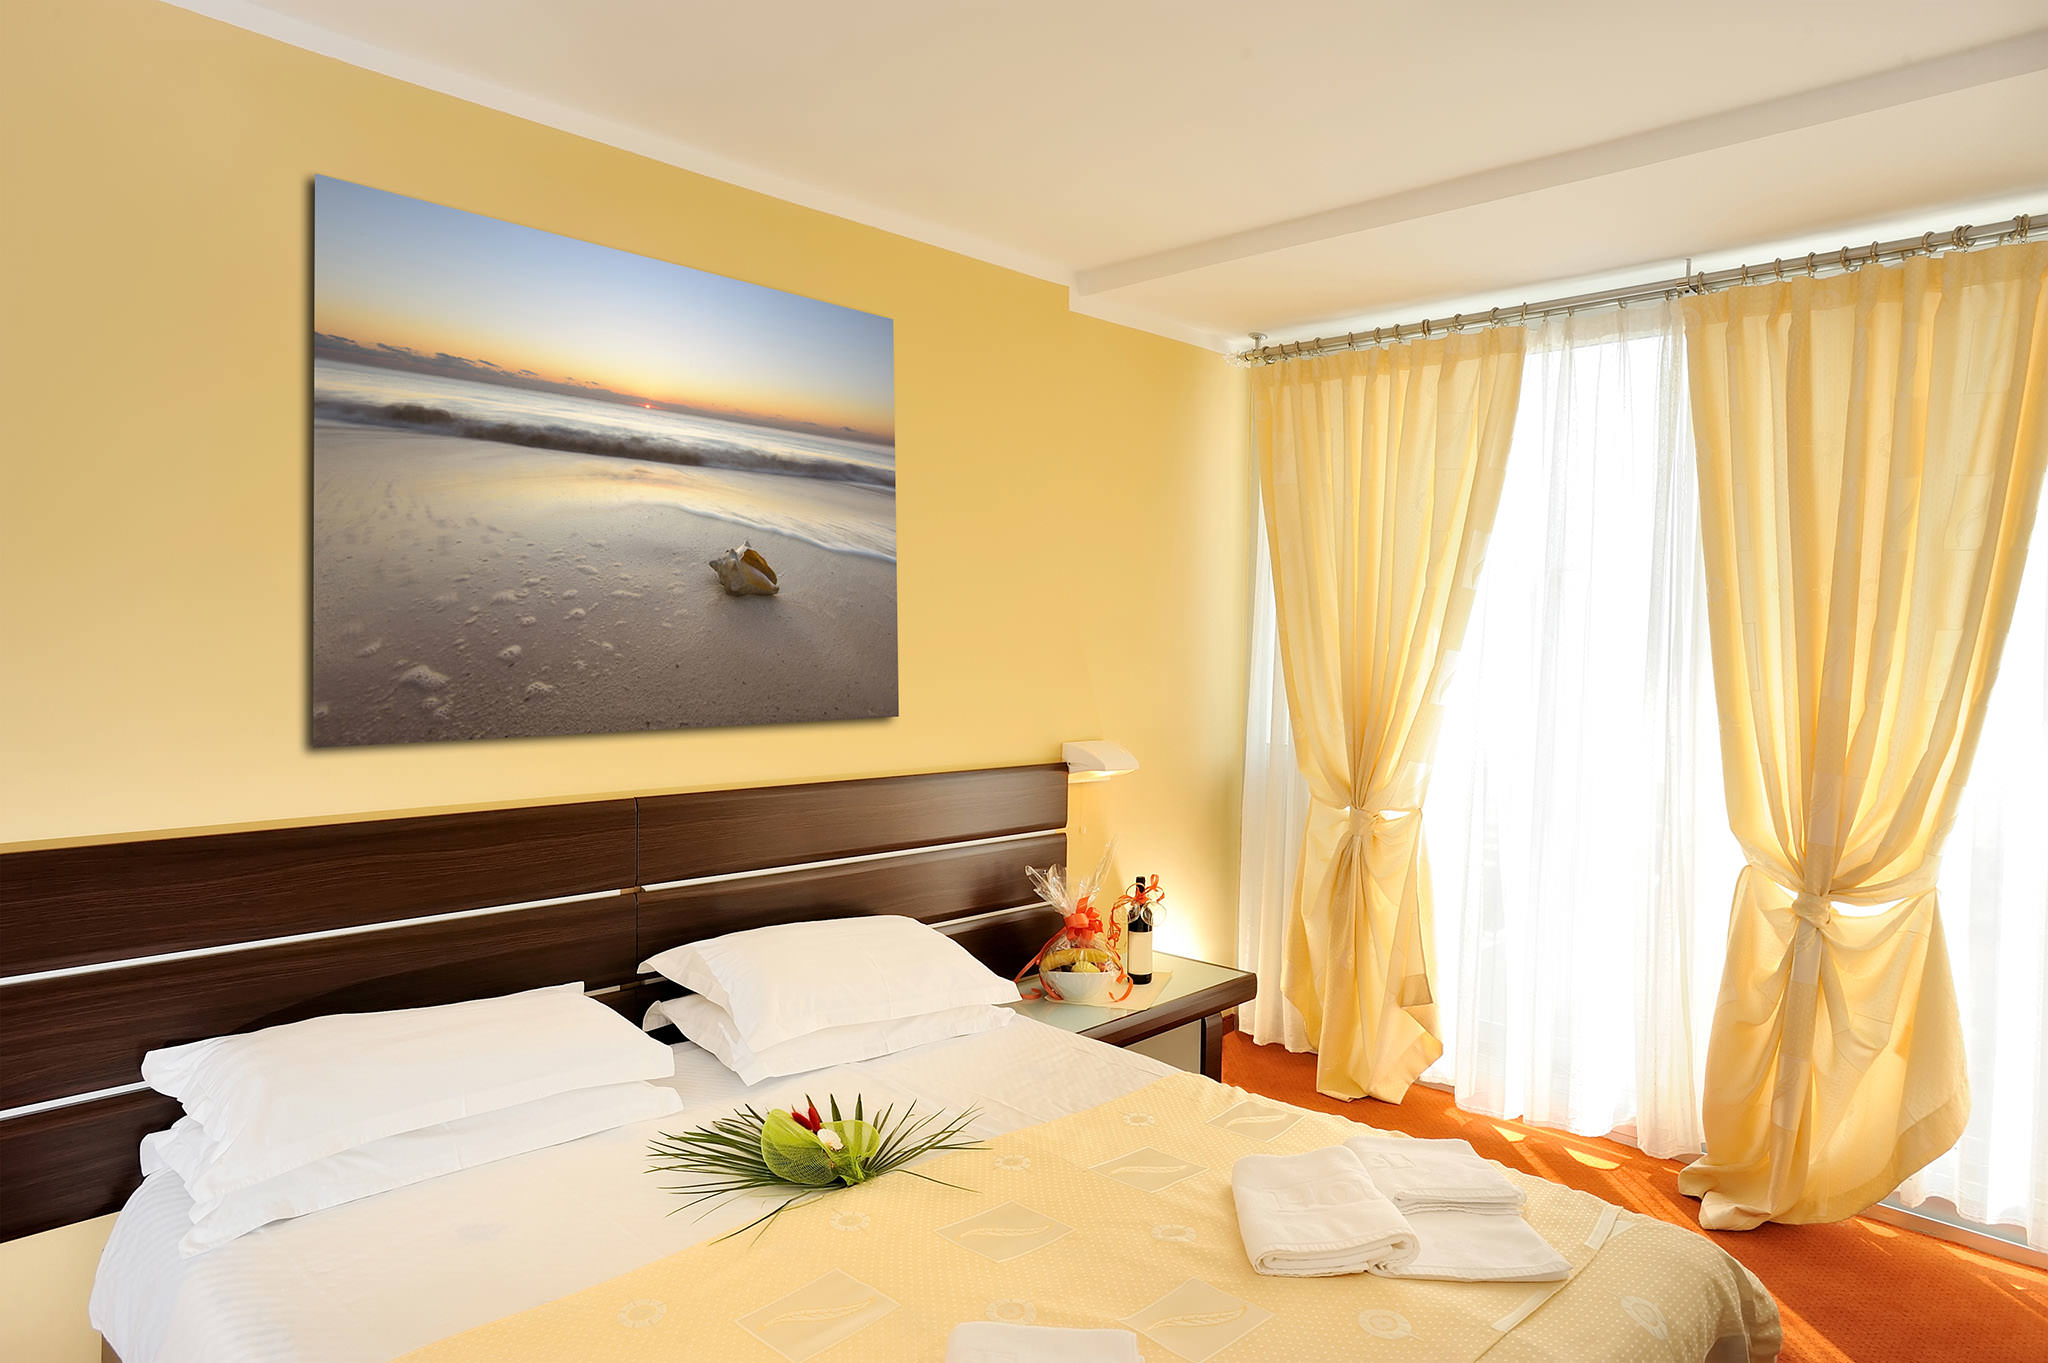 Unique Images Of Wall Picture for Bedroom - Best Home Design Ideas ...